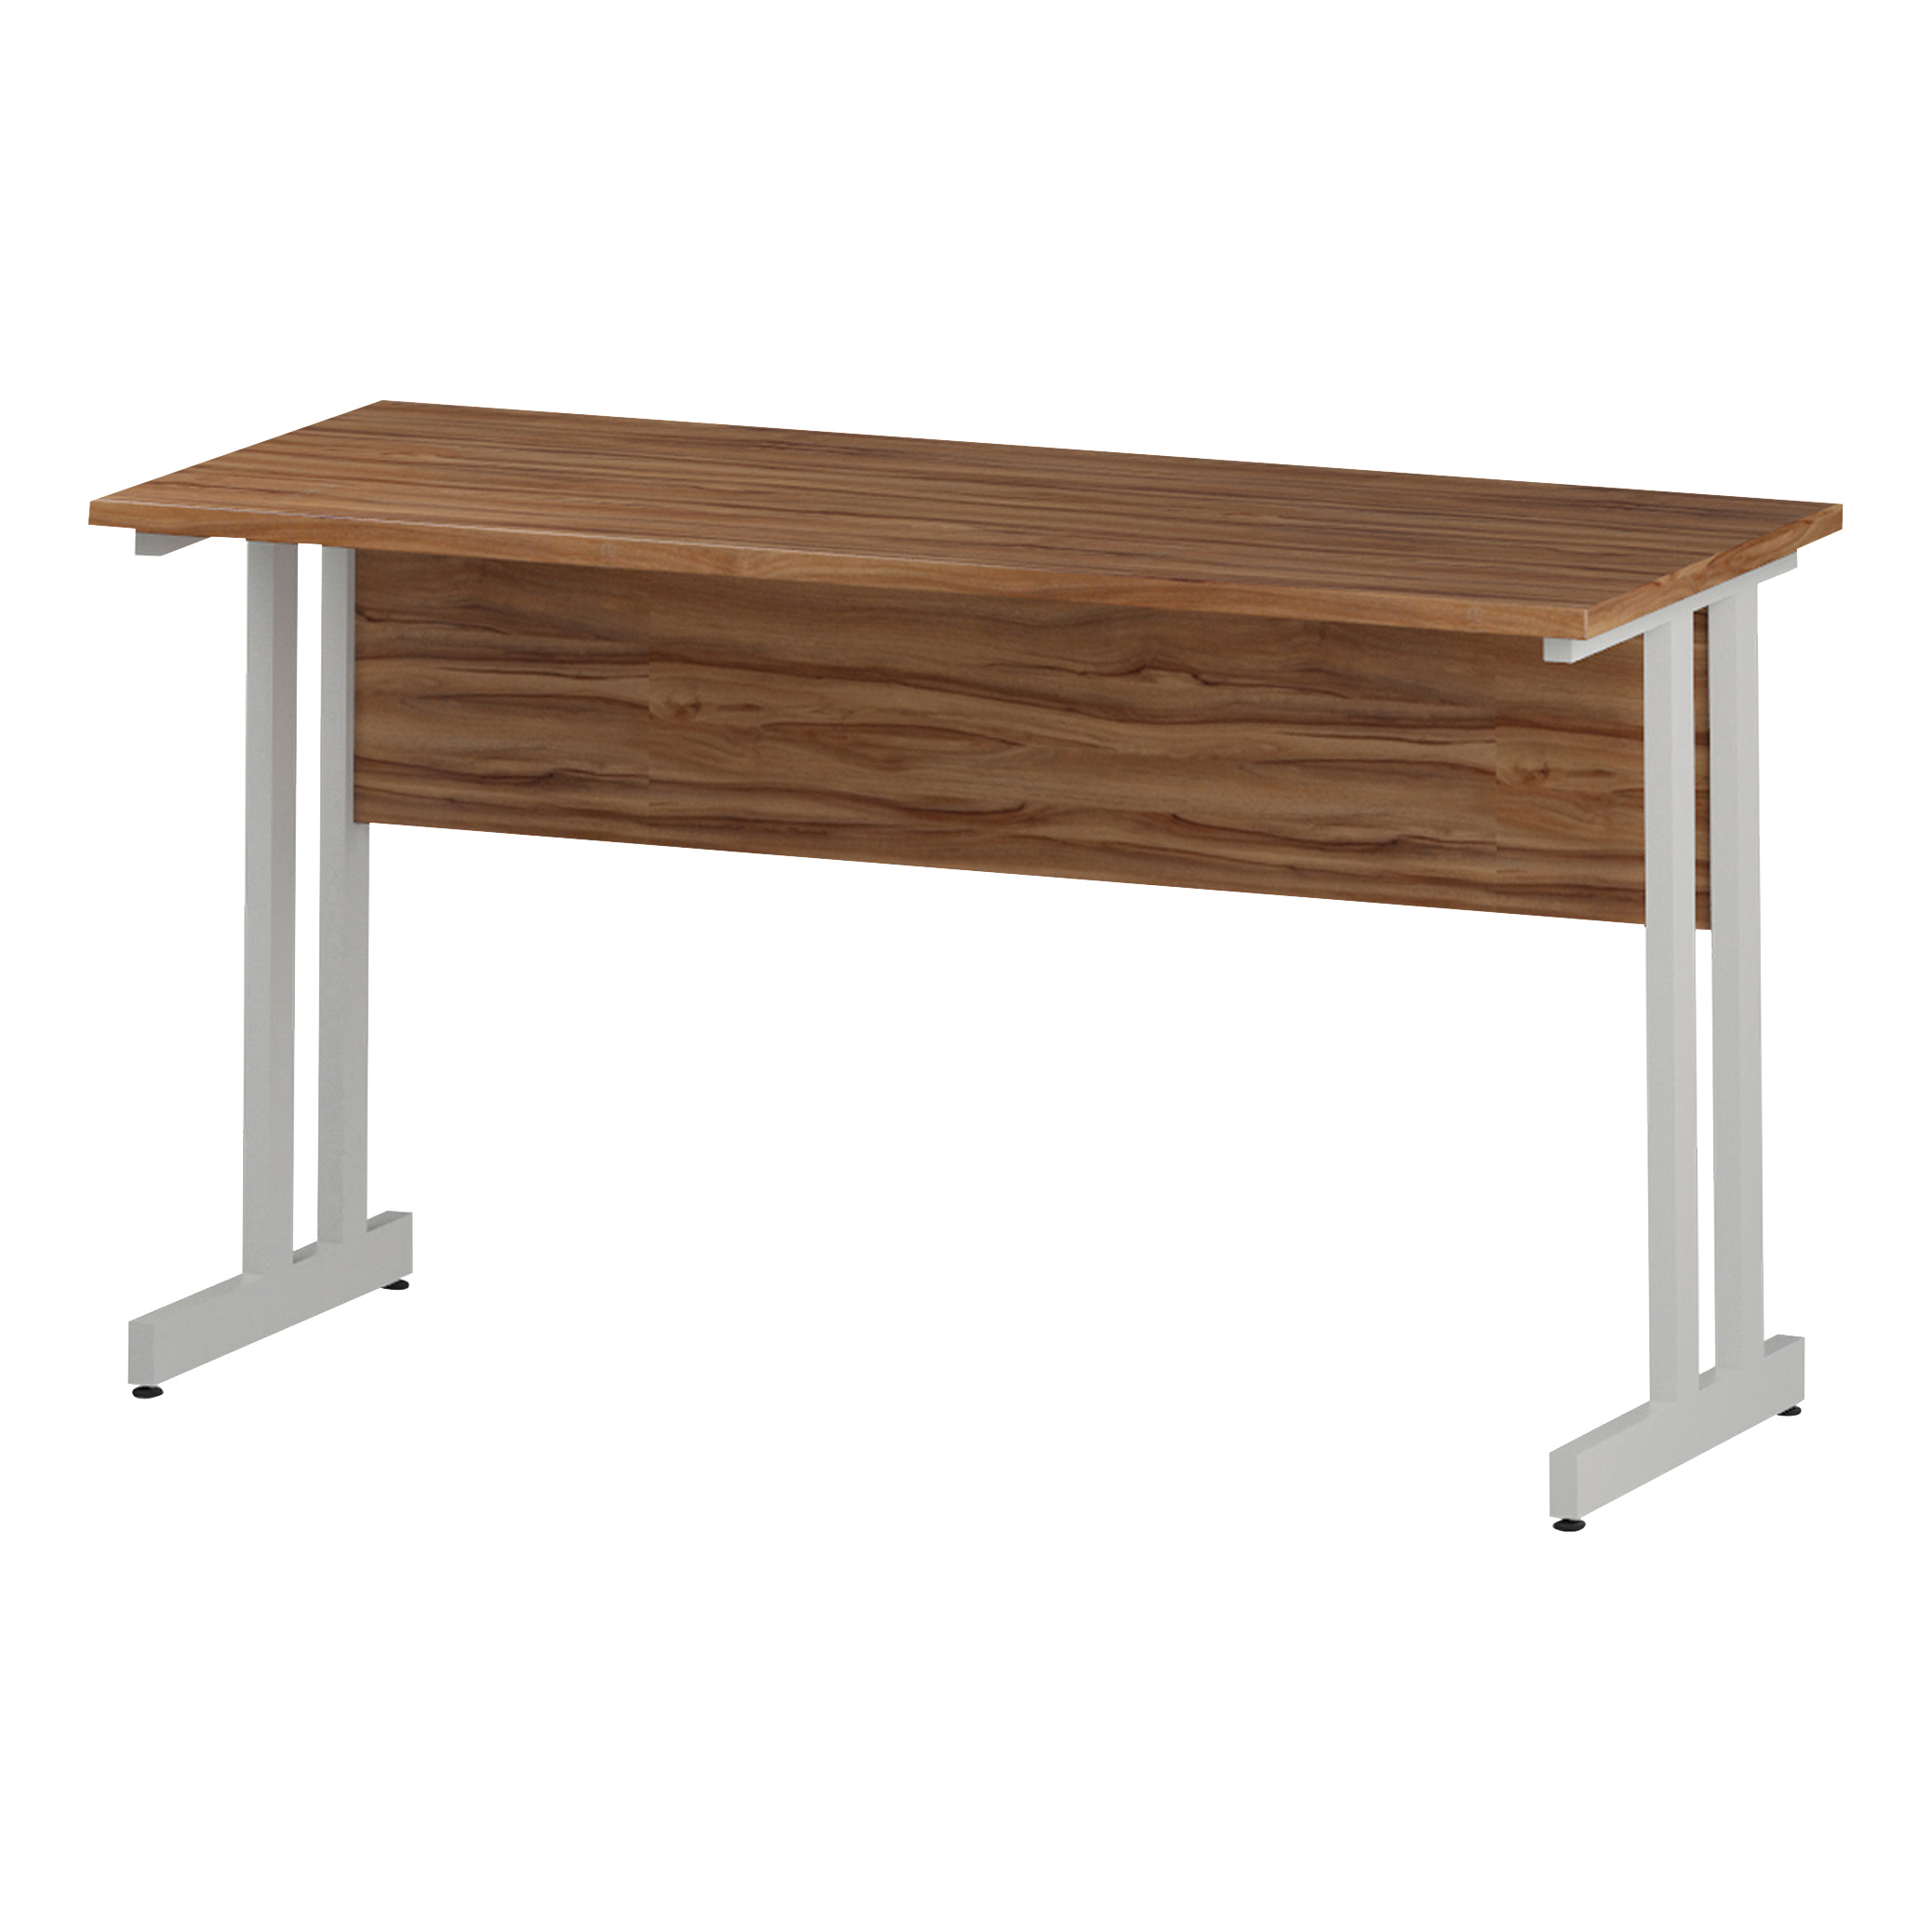 Trexus Rectangular Slim Desk White Cantilever Leg 1400x600mm Walnut Ref I001916